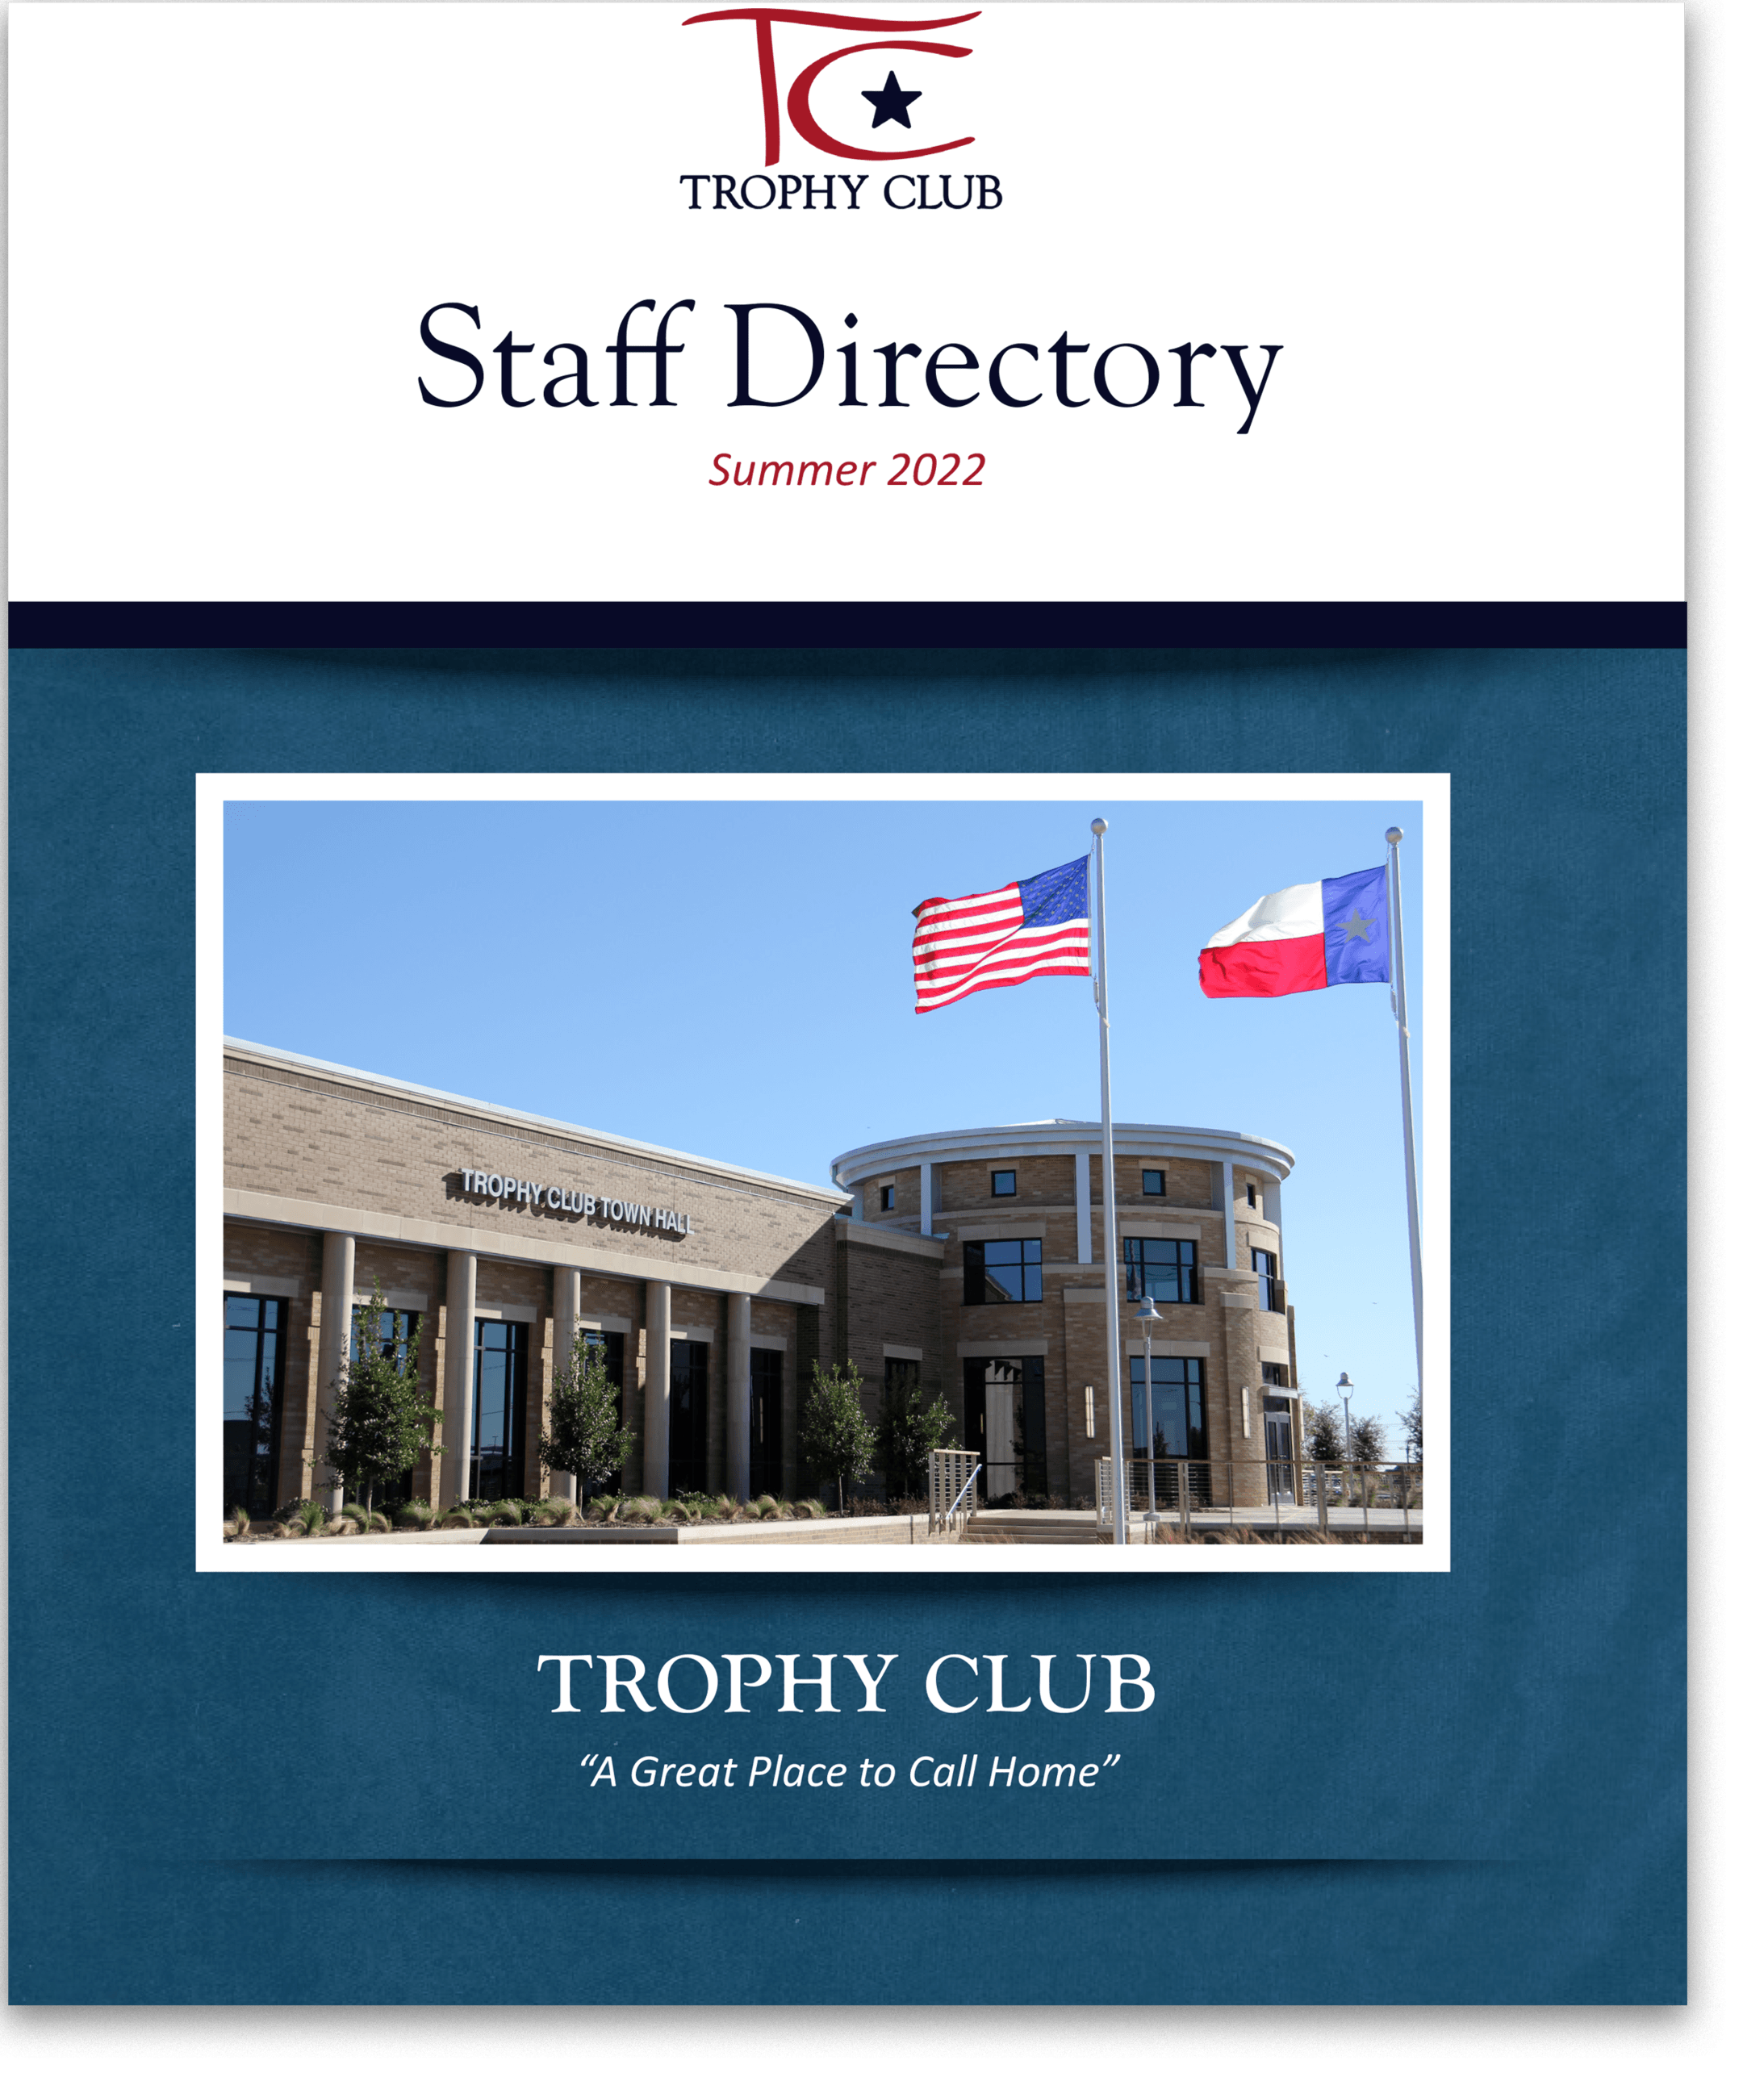 Trophy Club Staff Directory Org Chart